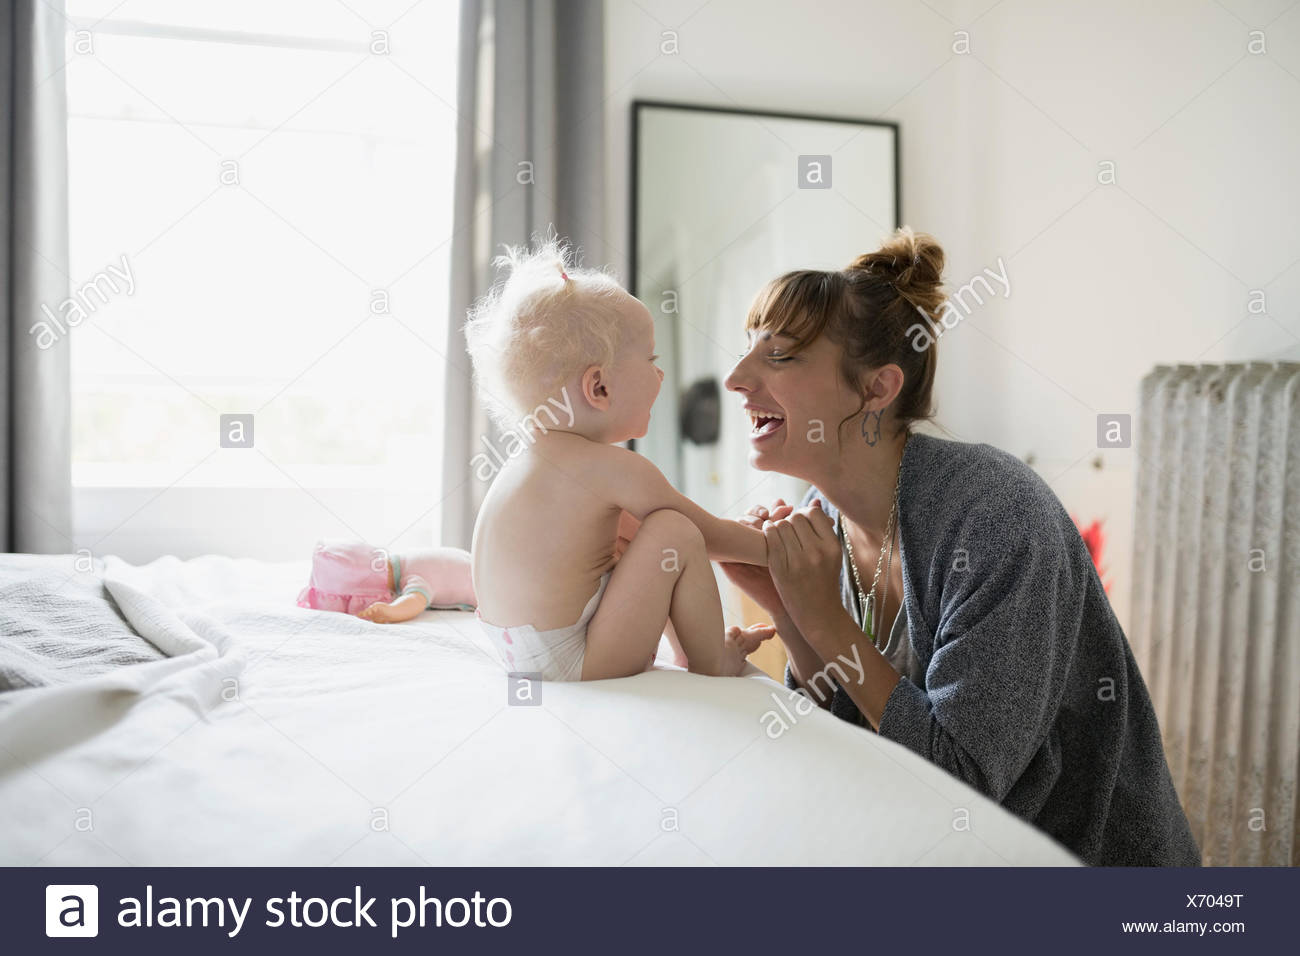 Playful mother and baby daughter face to face on bed - Stock Image